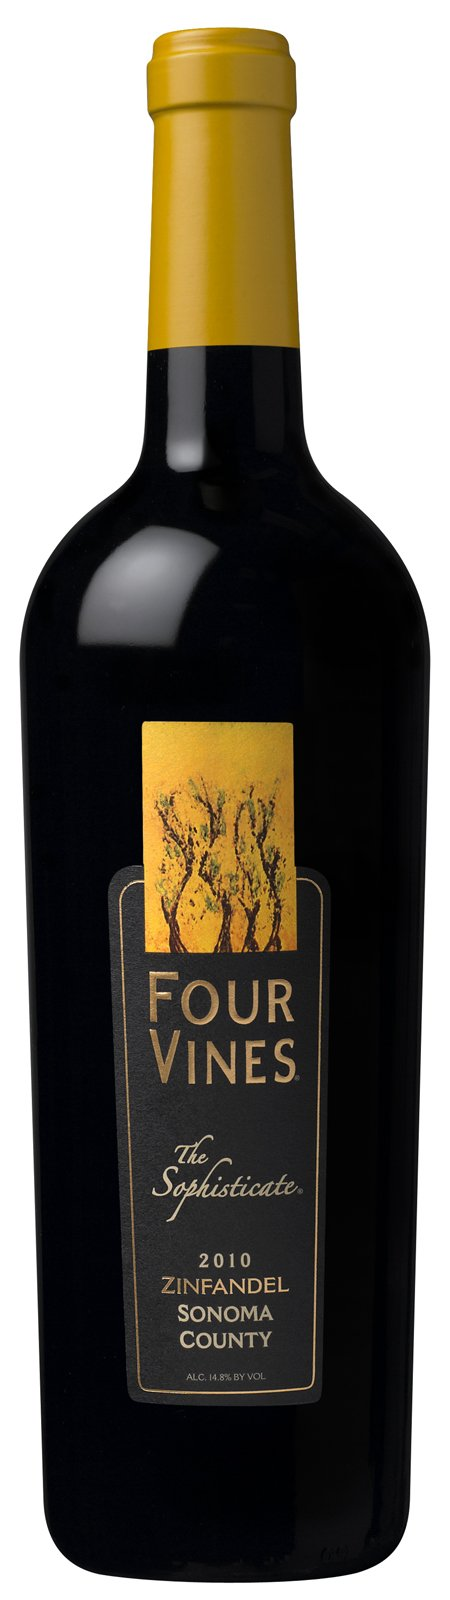 "2010 Four Vines Zinfandel ""The Sophisticate"" Sonoma County"